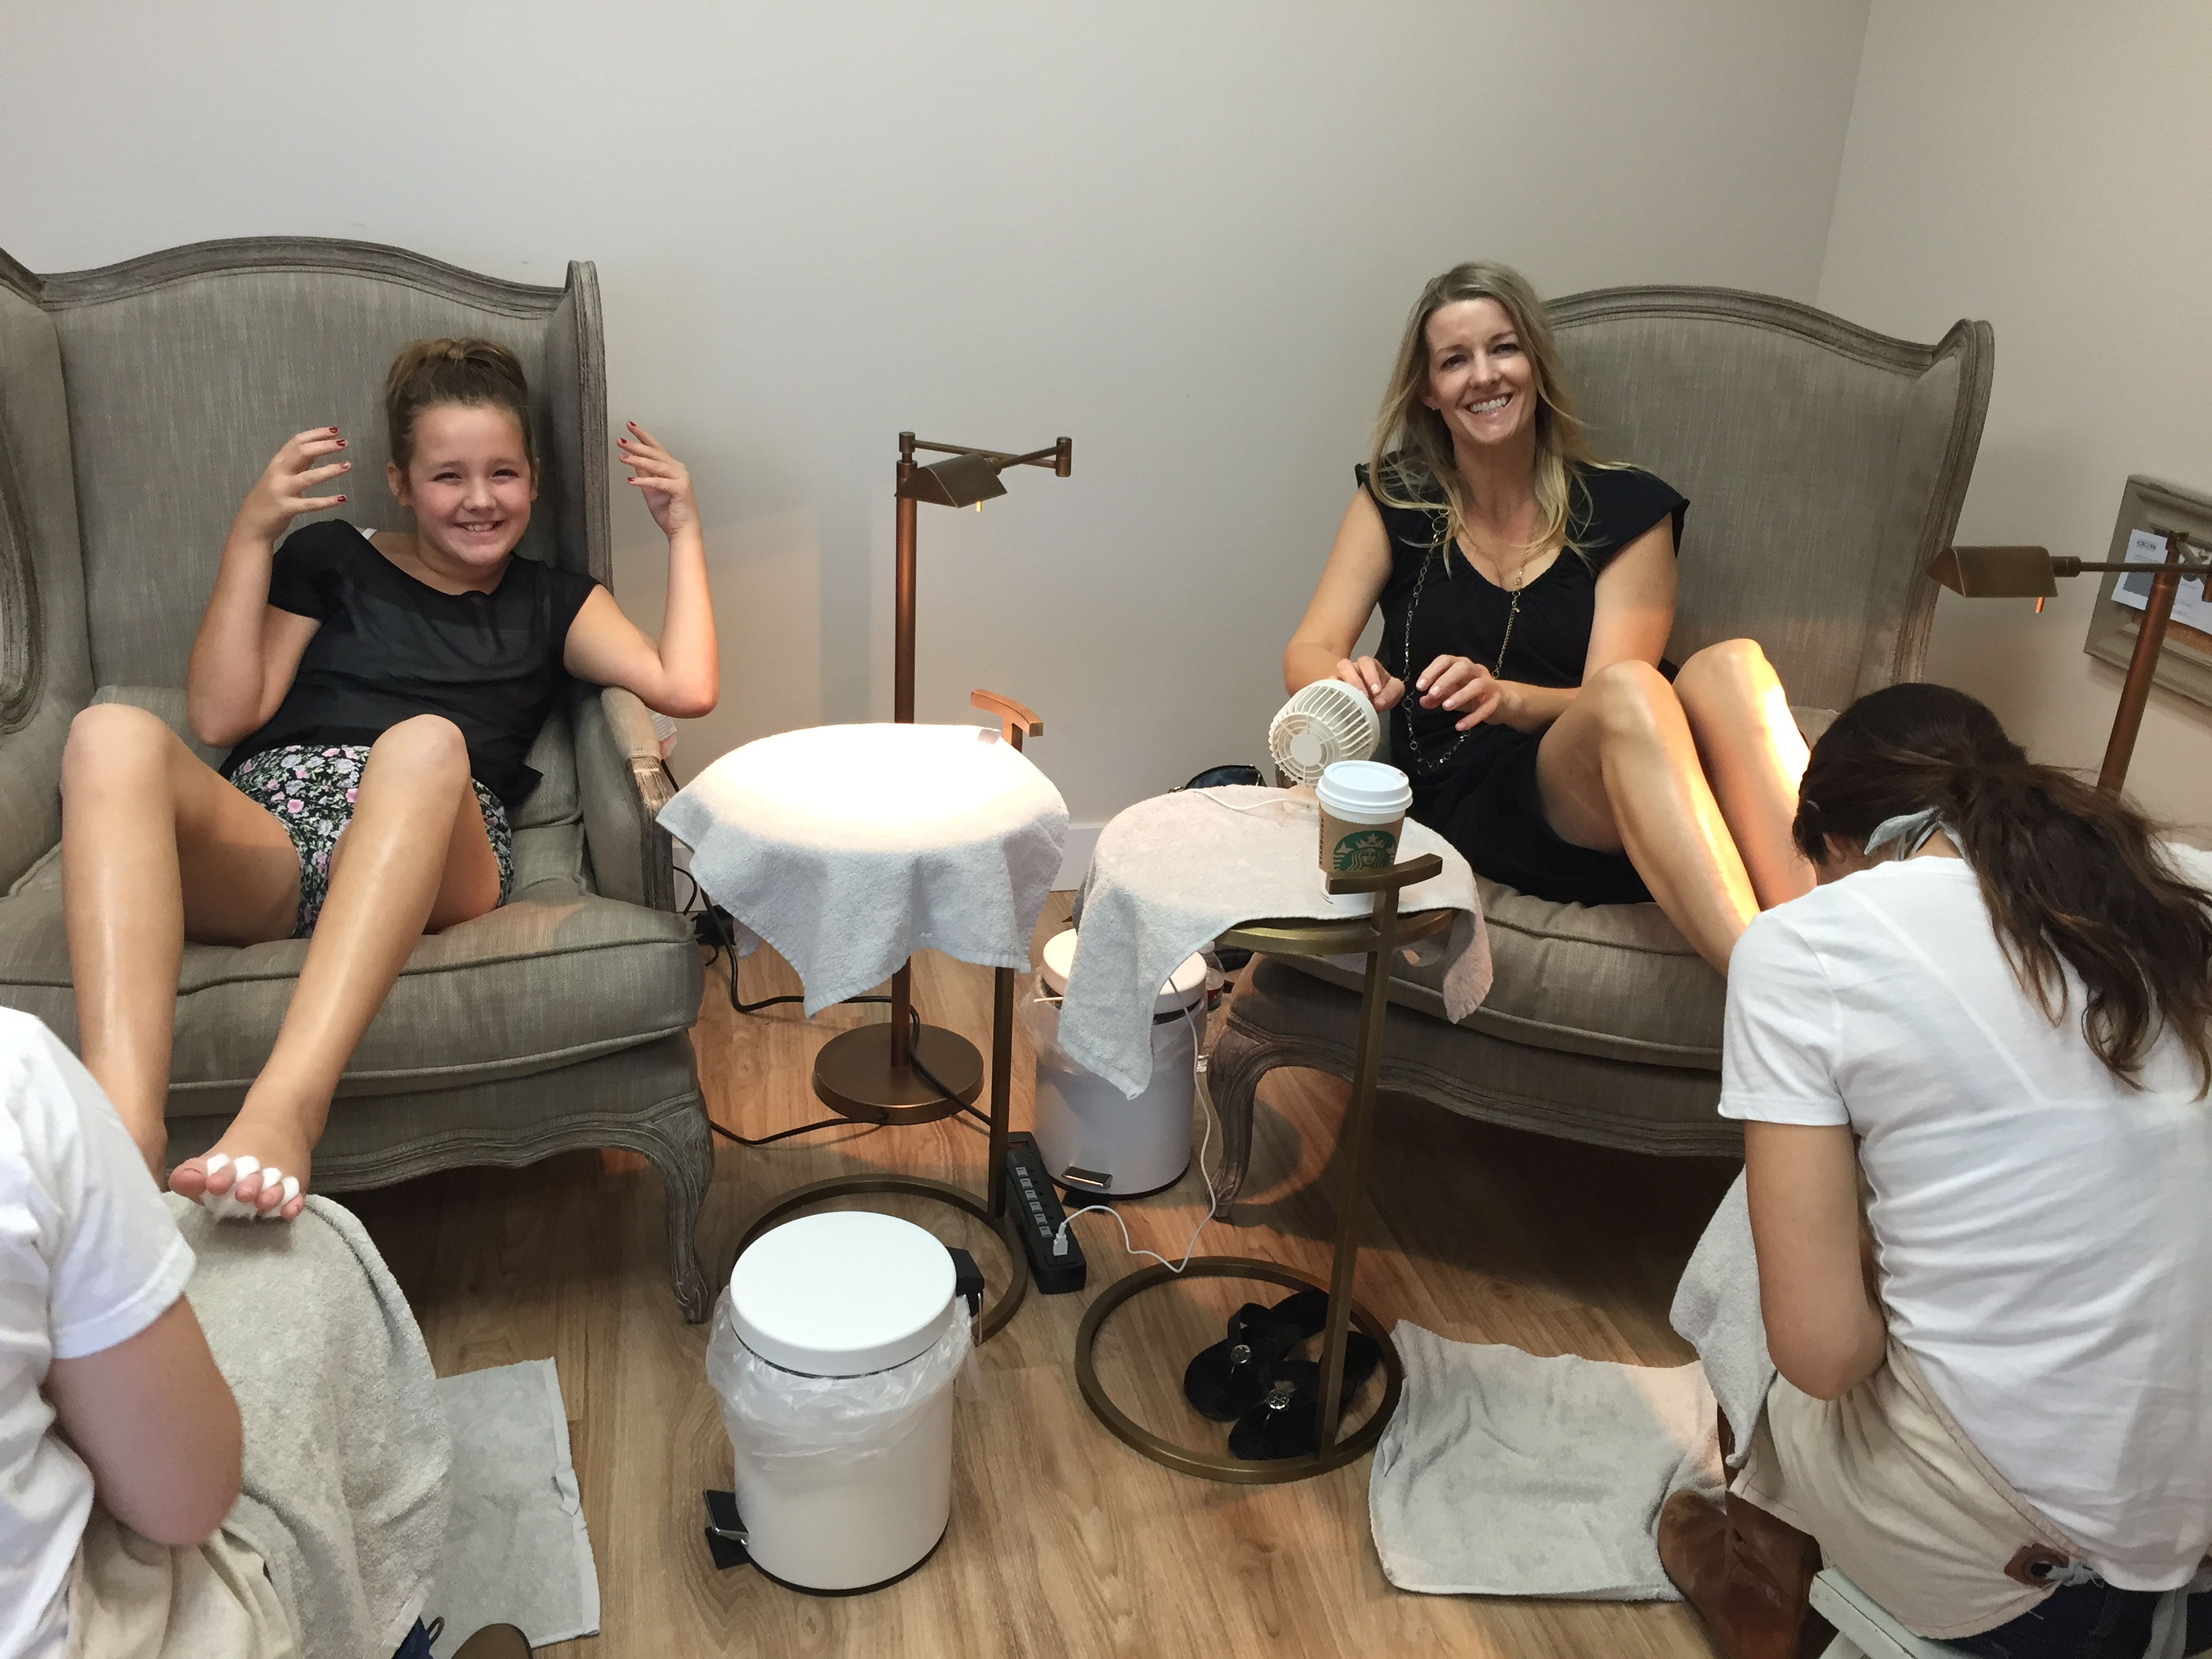 My daugther and I on some healthy mani/pedi date time.